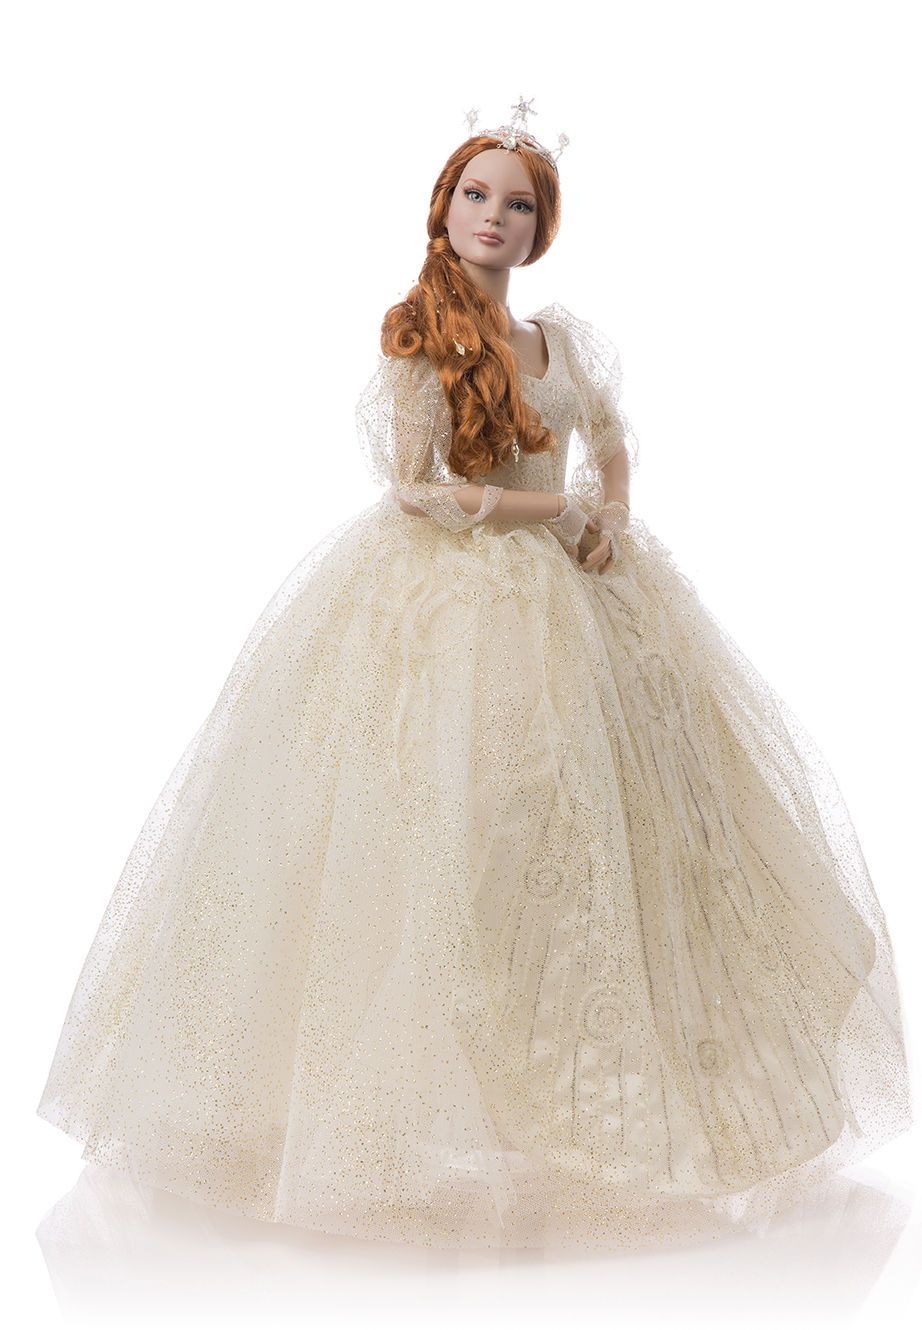 Details about The Wizard of Oz Glinda the Good Witch Tonner Doll ...